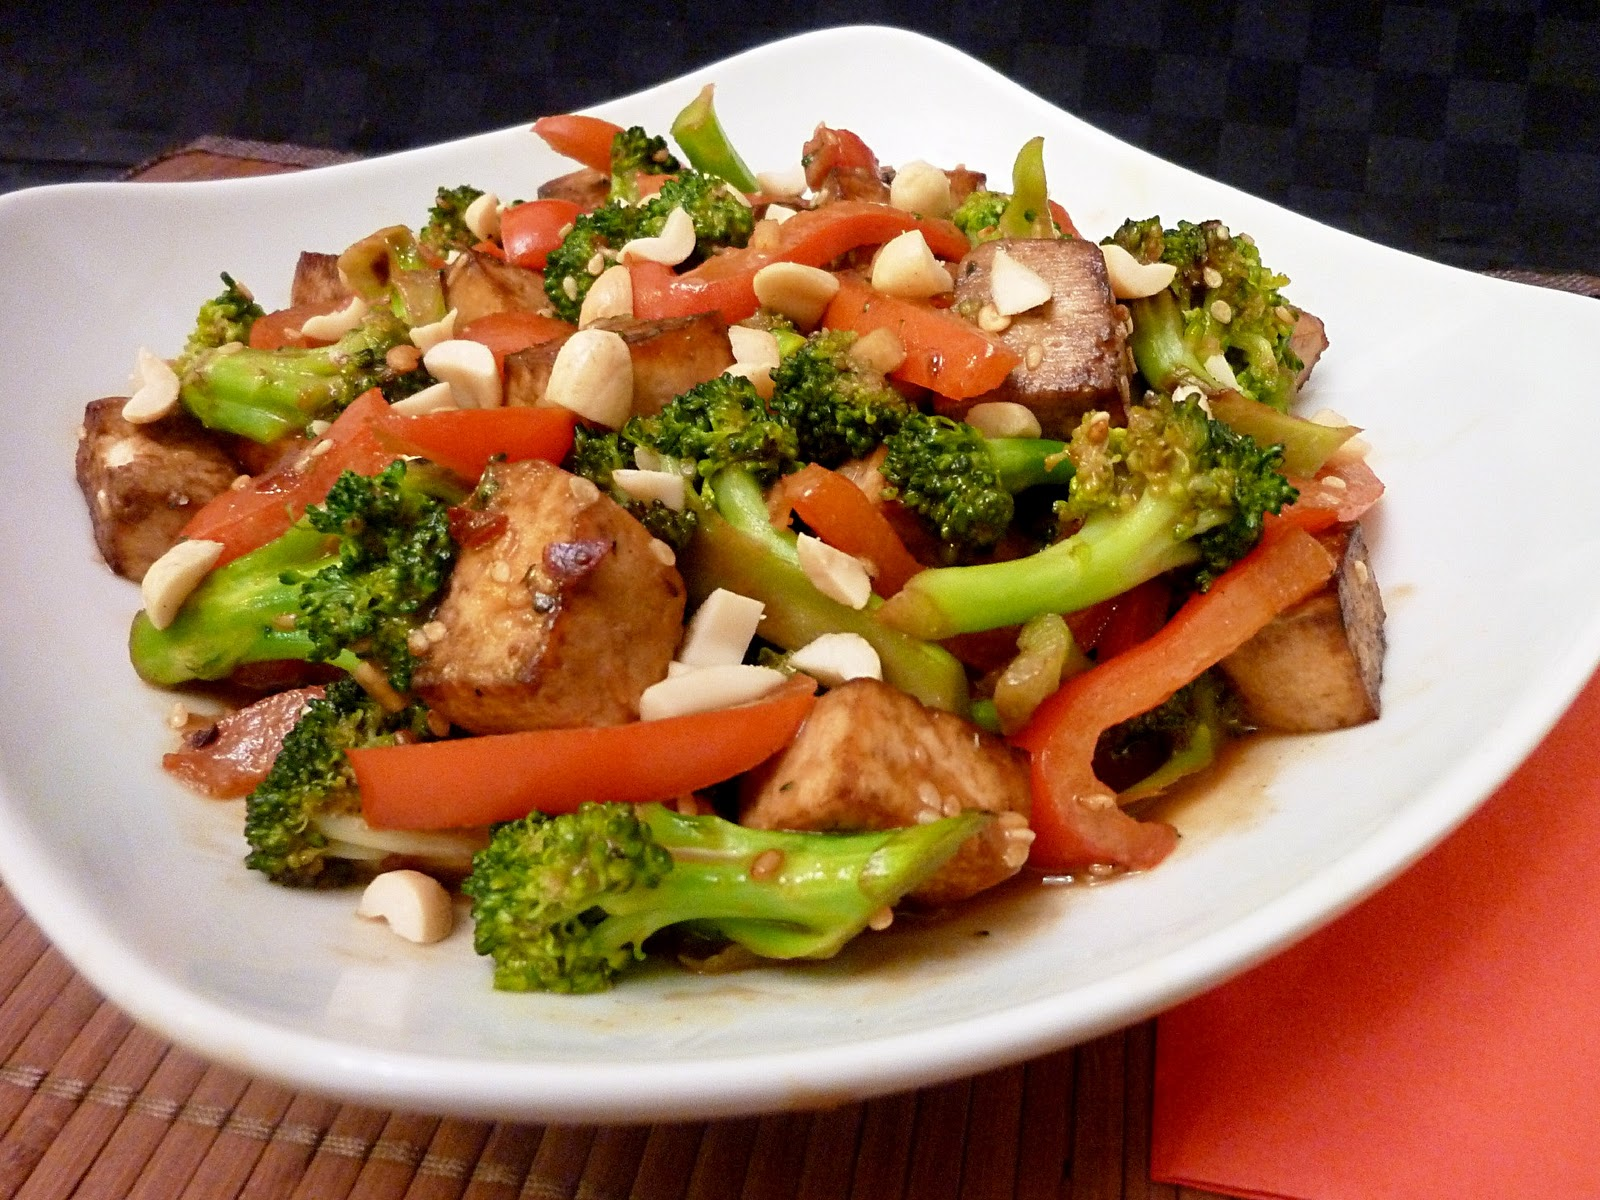 curry tofu stir fry broccoli tofu stir fry with brown rice stir fried ...